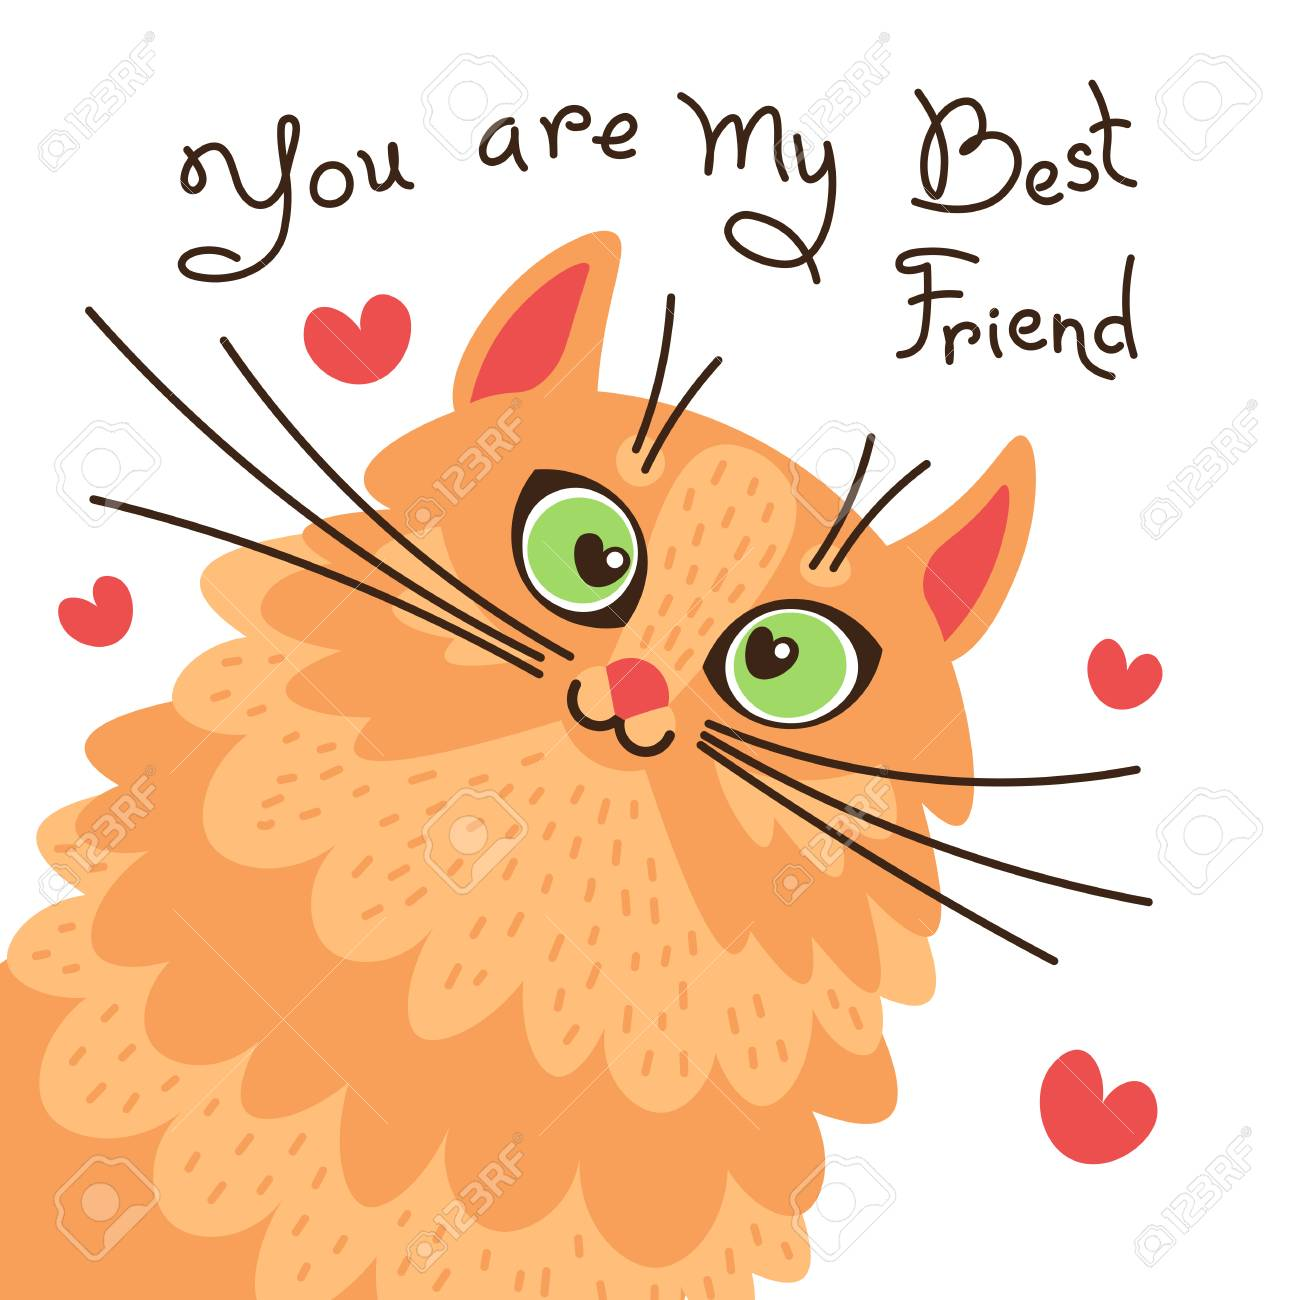 Red cat you are my best friend. Card with sweet ginger kitten. Vector illustration - 104221442